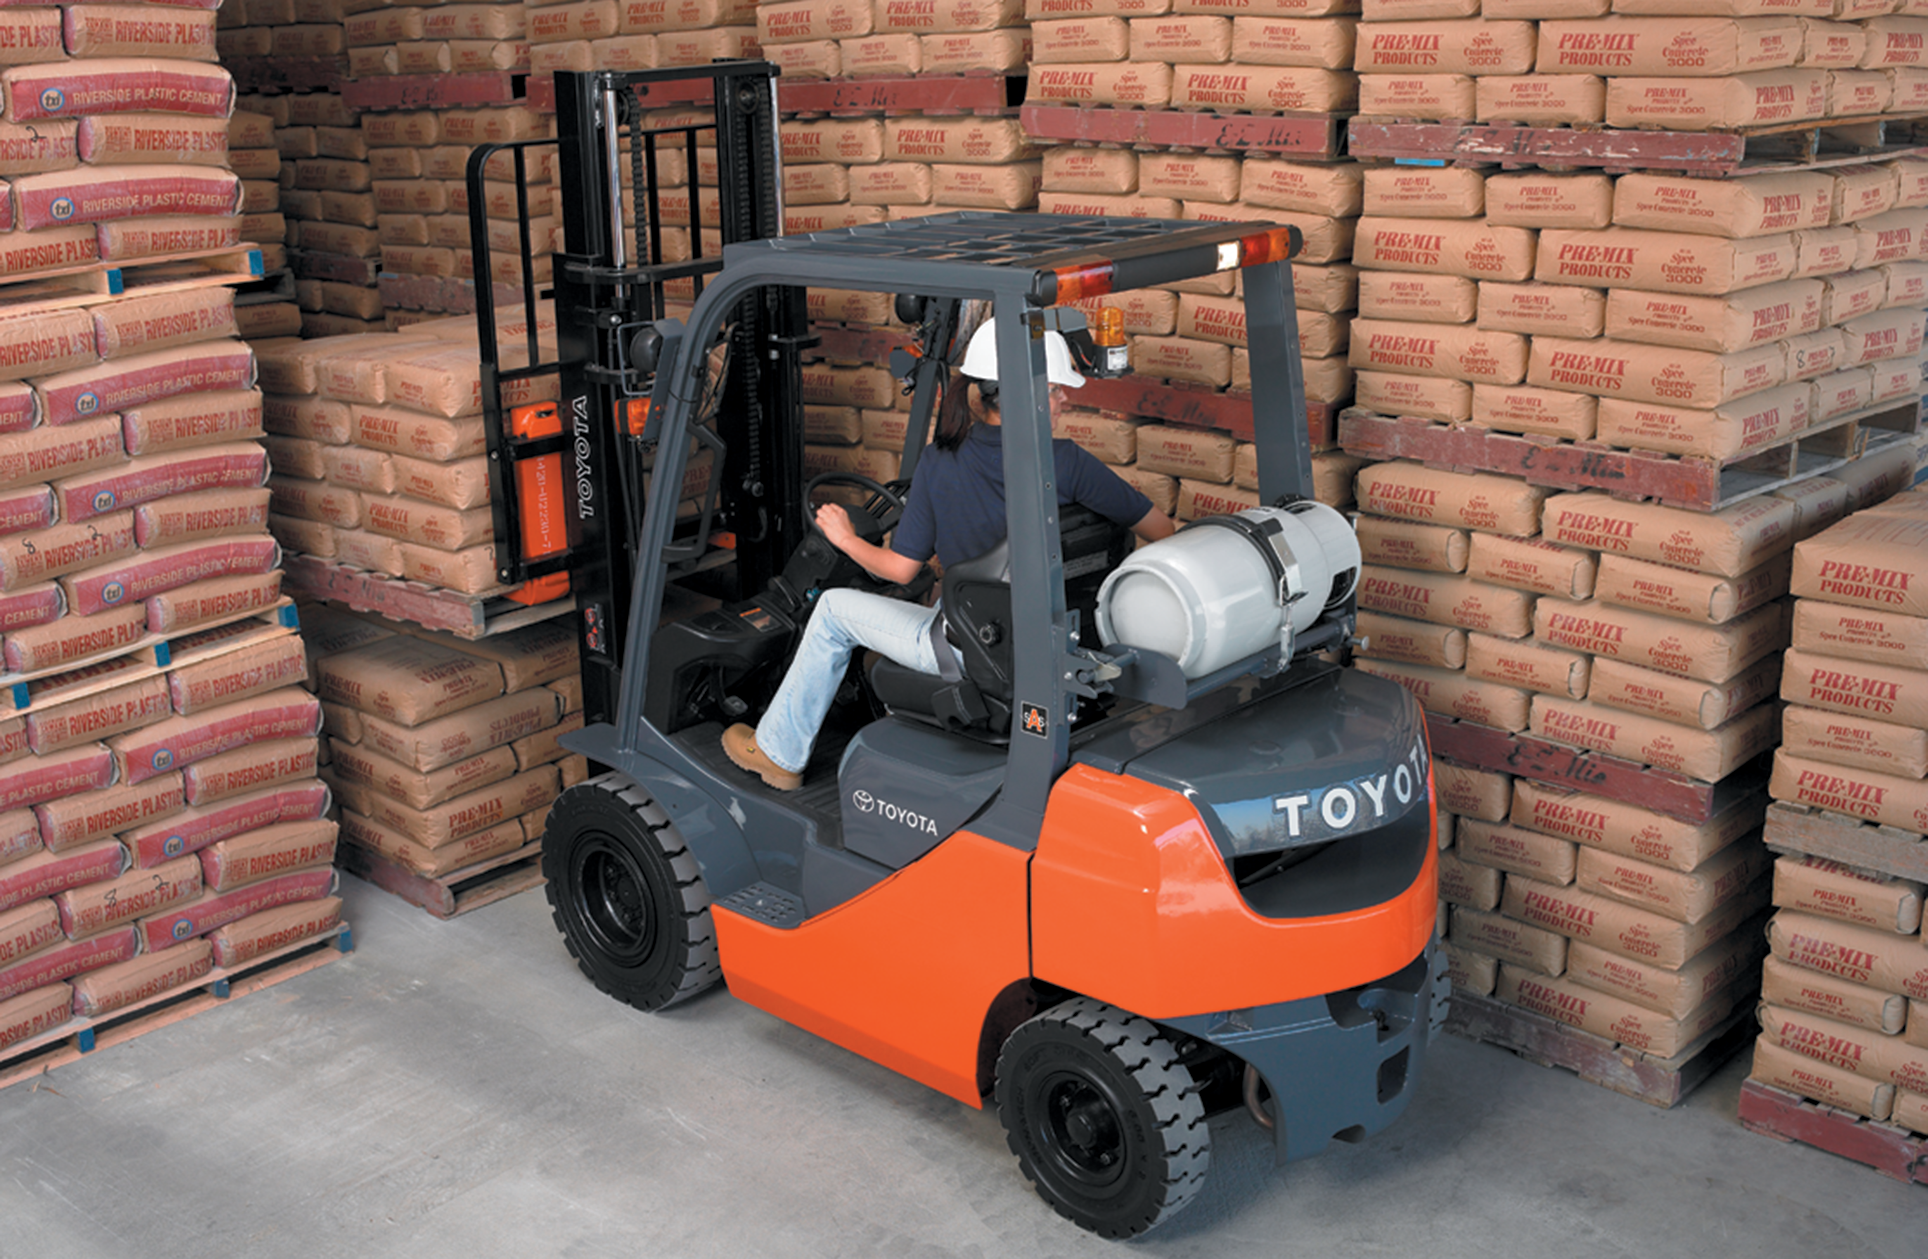 Toyota's Core IC Pneumatic Forklift in action.